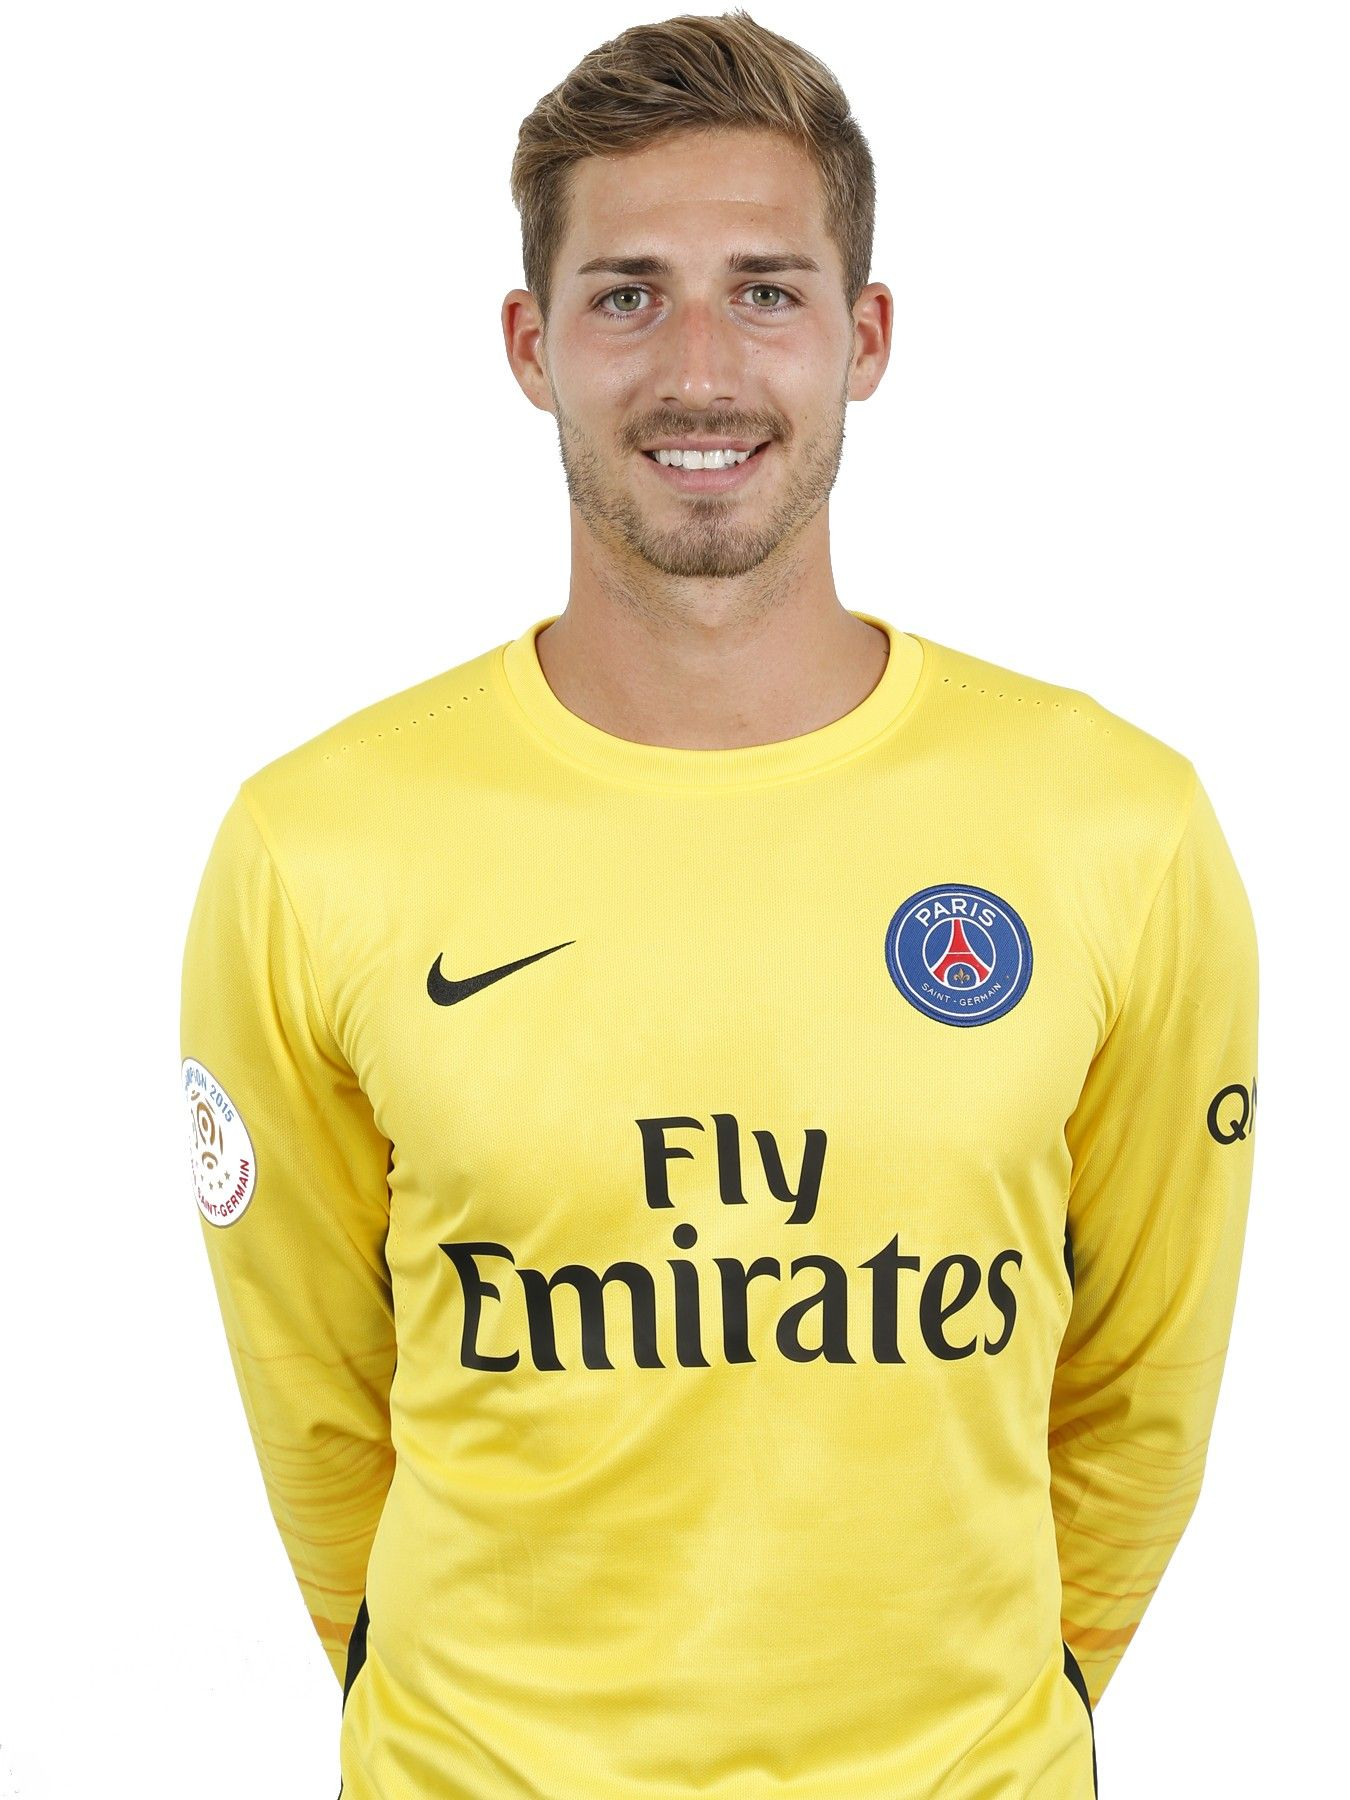 79e644f8b ... club jersey 14acf 44920  discount code for kevin trapp psg  parissaintgermain psg goalkeeper goalie football soccer 96f03 81470